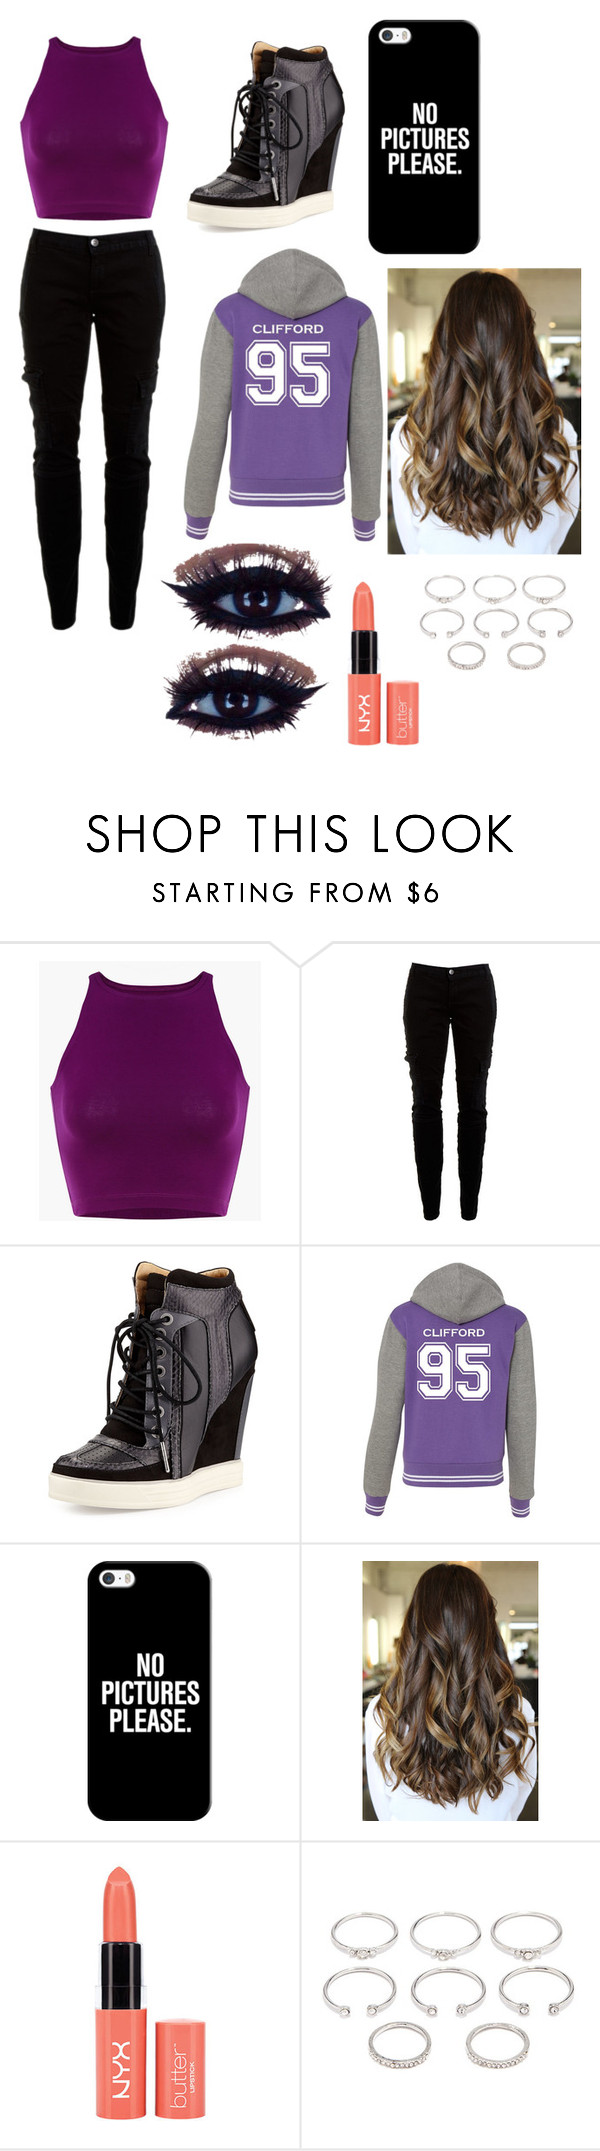 """""""i woke up like this!!!!!!!!!!!!!!!!!!!!!!!!"""" by jem-bailey ❤ liked on Polyvore featuring beauty, Joie, L.A.M.B., Casetify and Forever 21"""